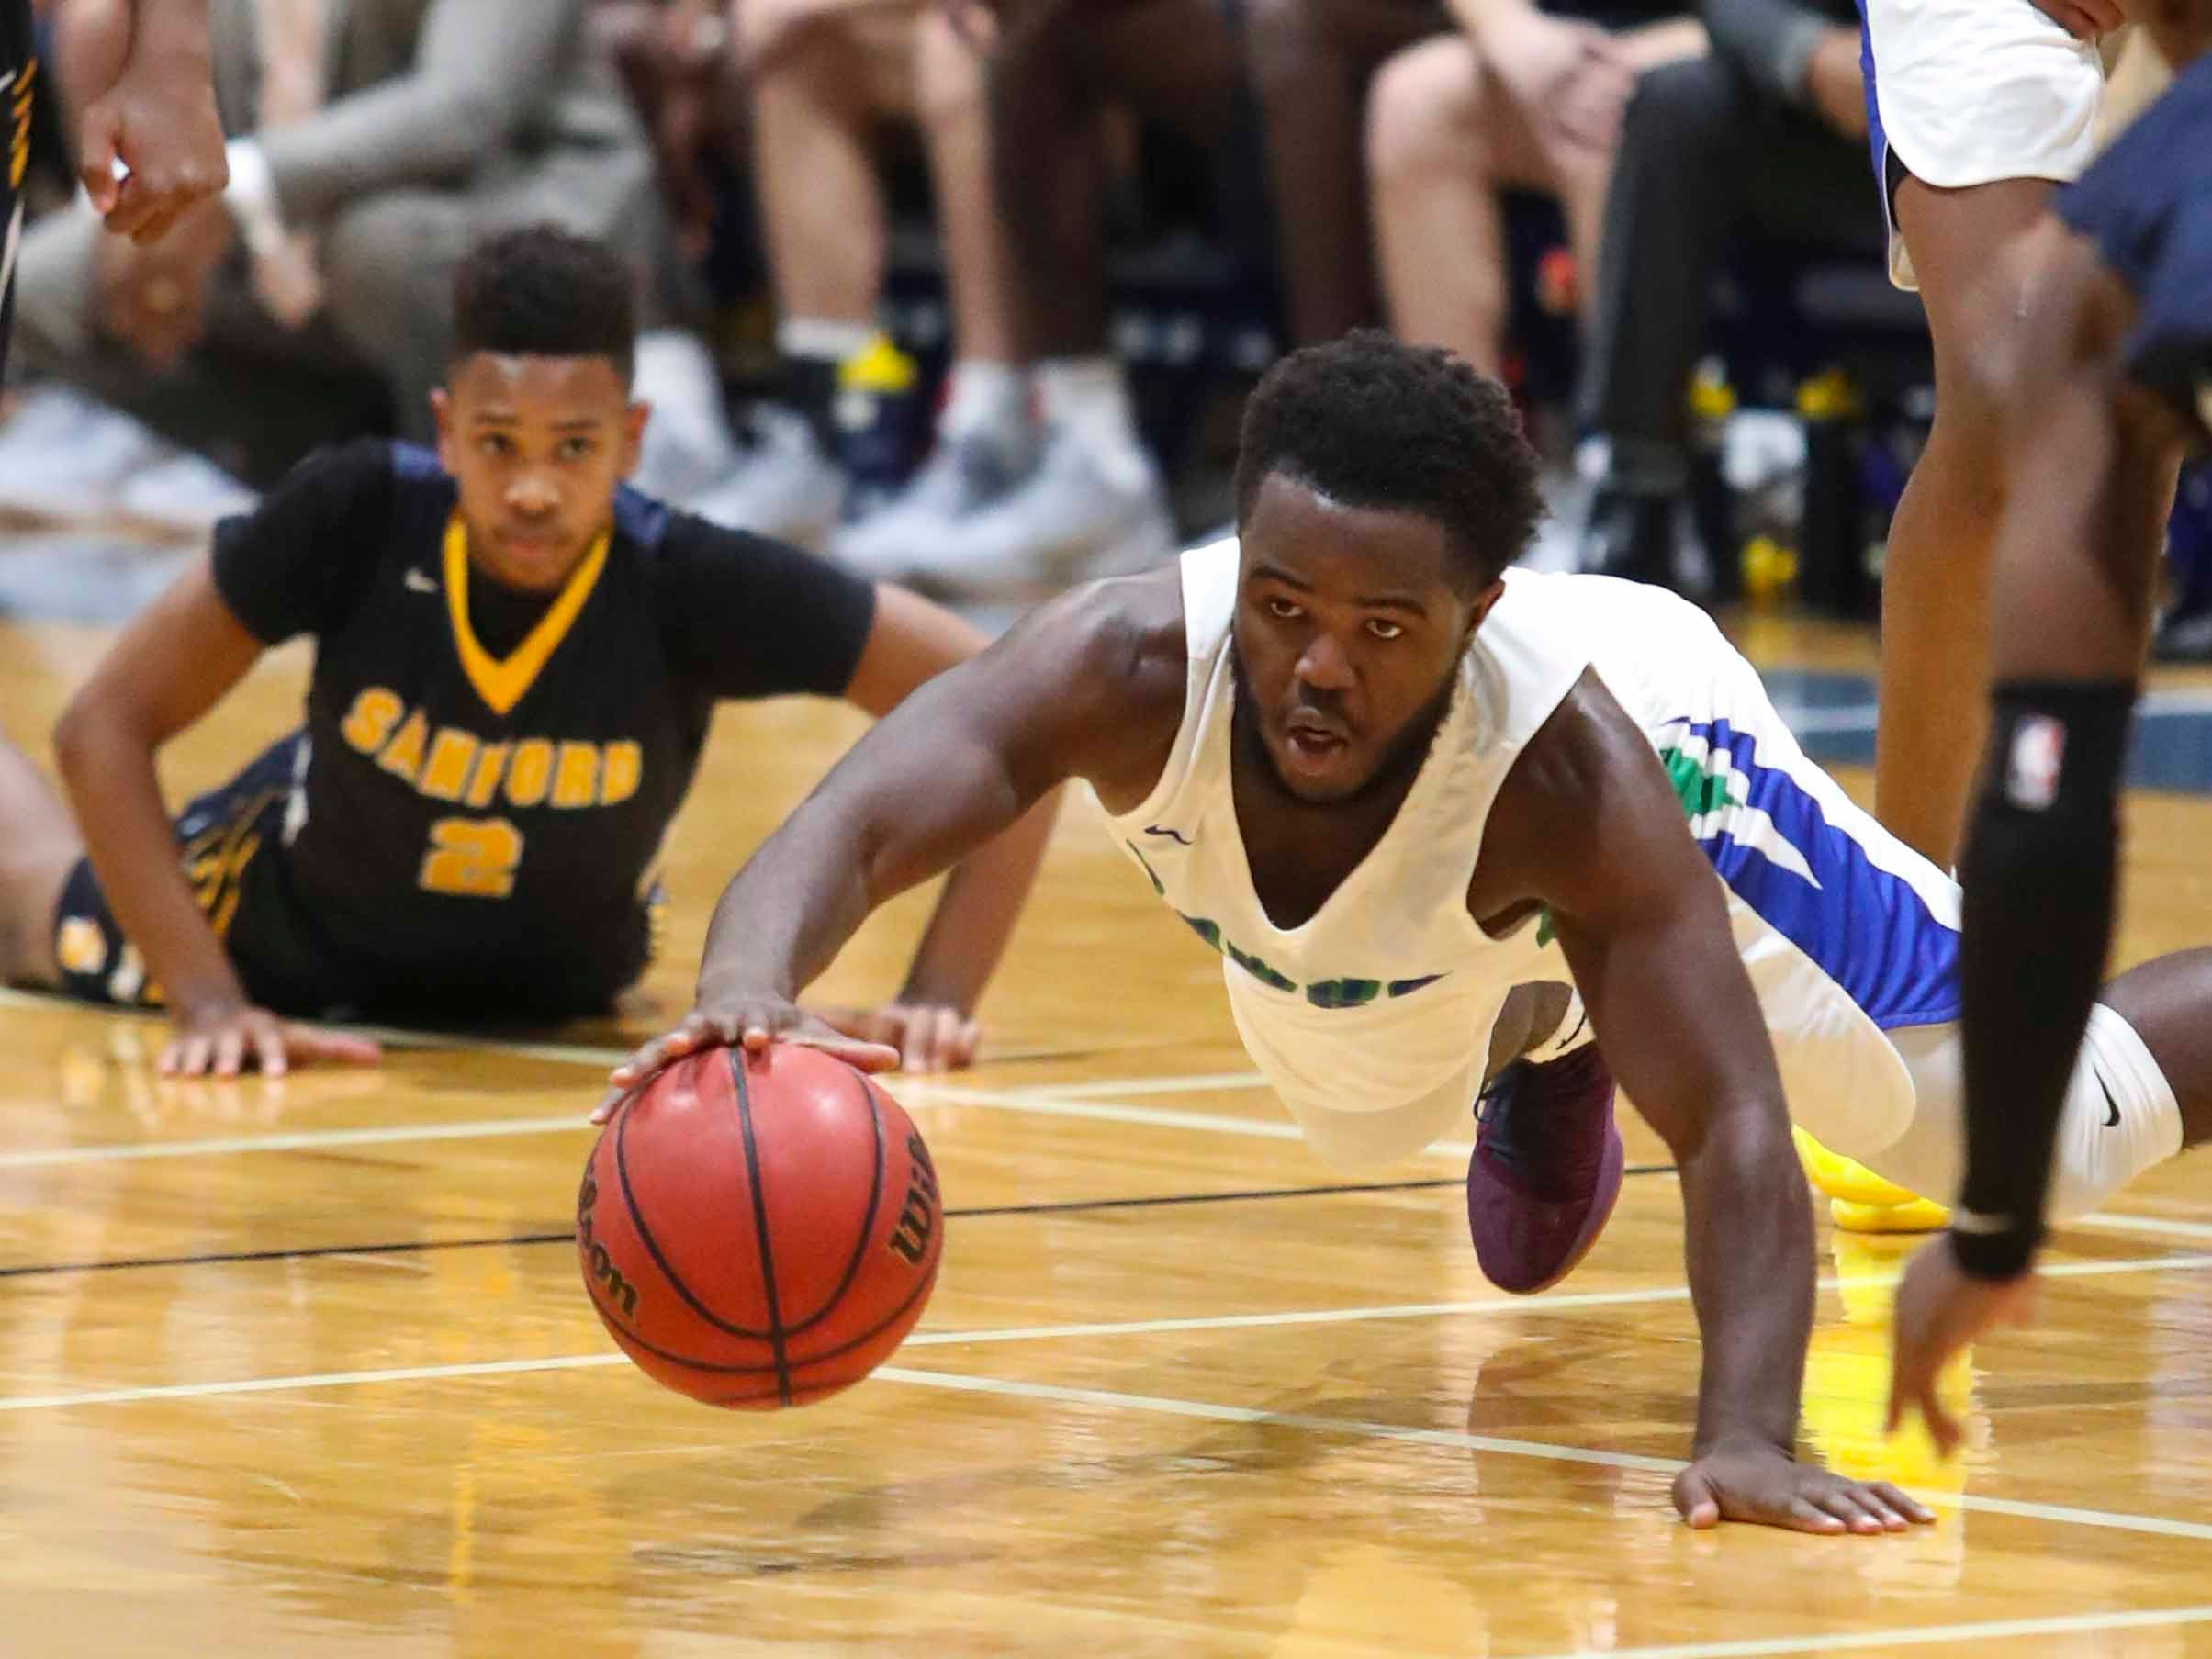 St. Georges' Tyrese Owens dives for a loose ball after battling with Sanford's Corey Perkins (left) during Sanford's 62-56 overtime win at St. Georges Thursday.